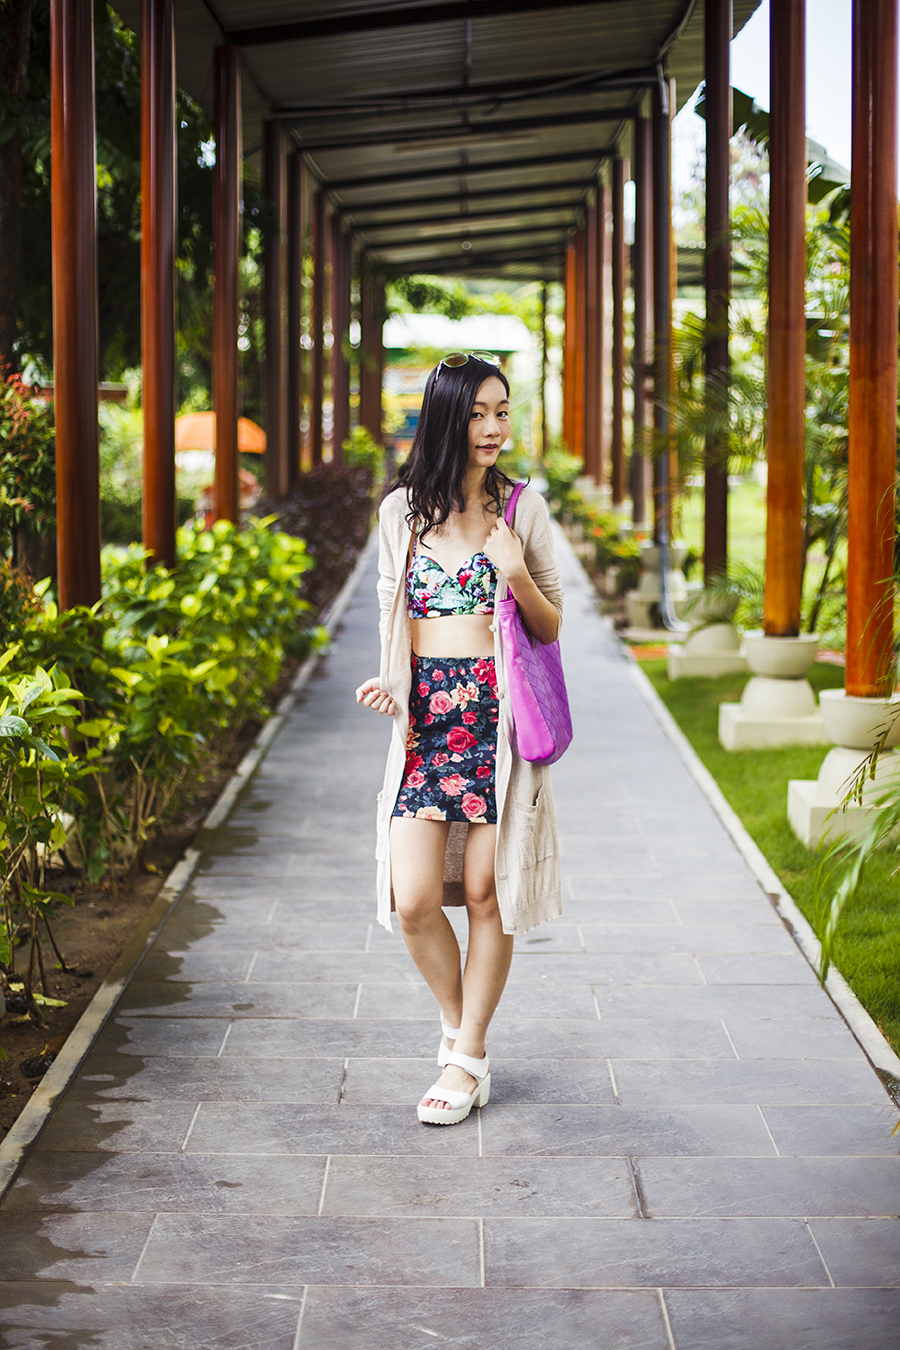 Floral two piece poolside outfit:  Motel Rocks floral bikini top, Forever 21 floral banded skirt, Guess iridescent sunglasses, Taobao white platform sandals, Zara long v-neck cardigan, Osewaya mermaid earrings via JRunway, Nine West purple tote bag.